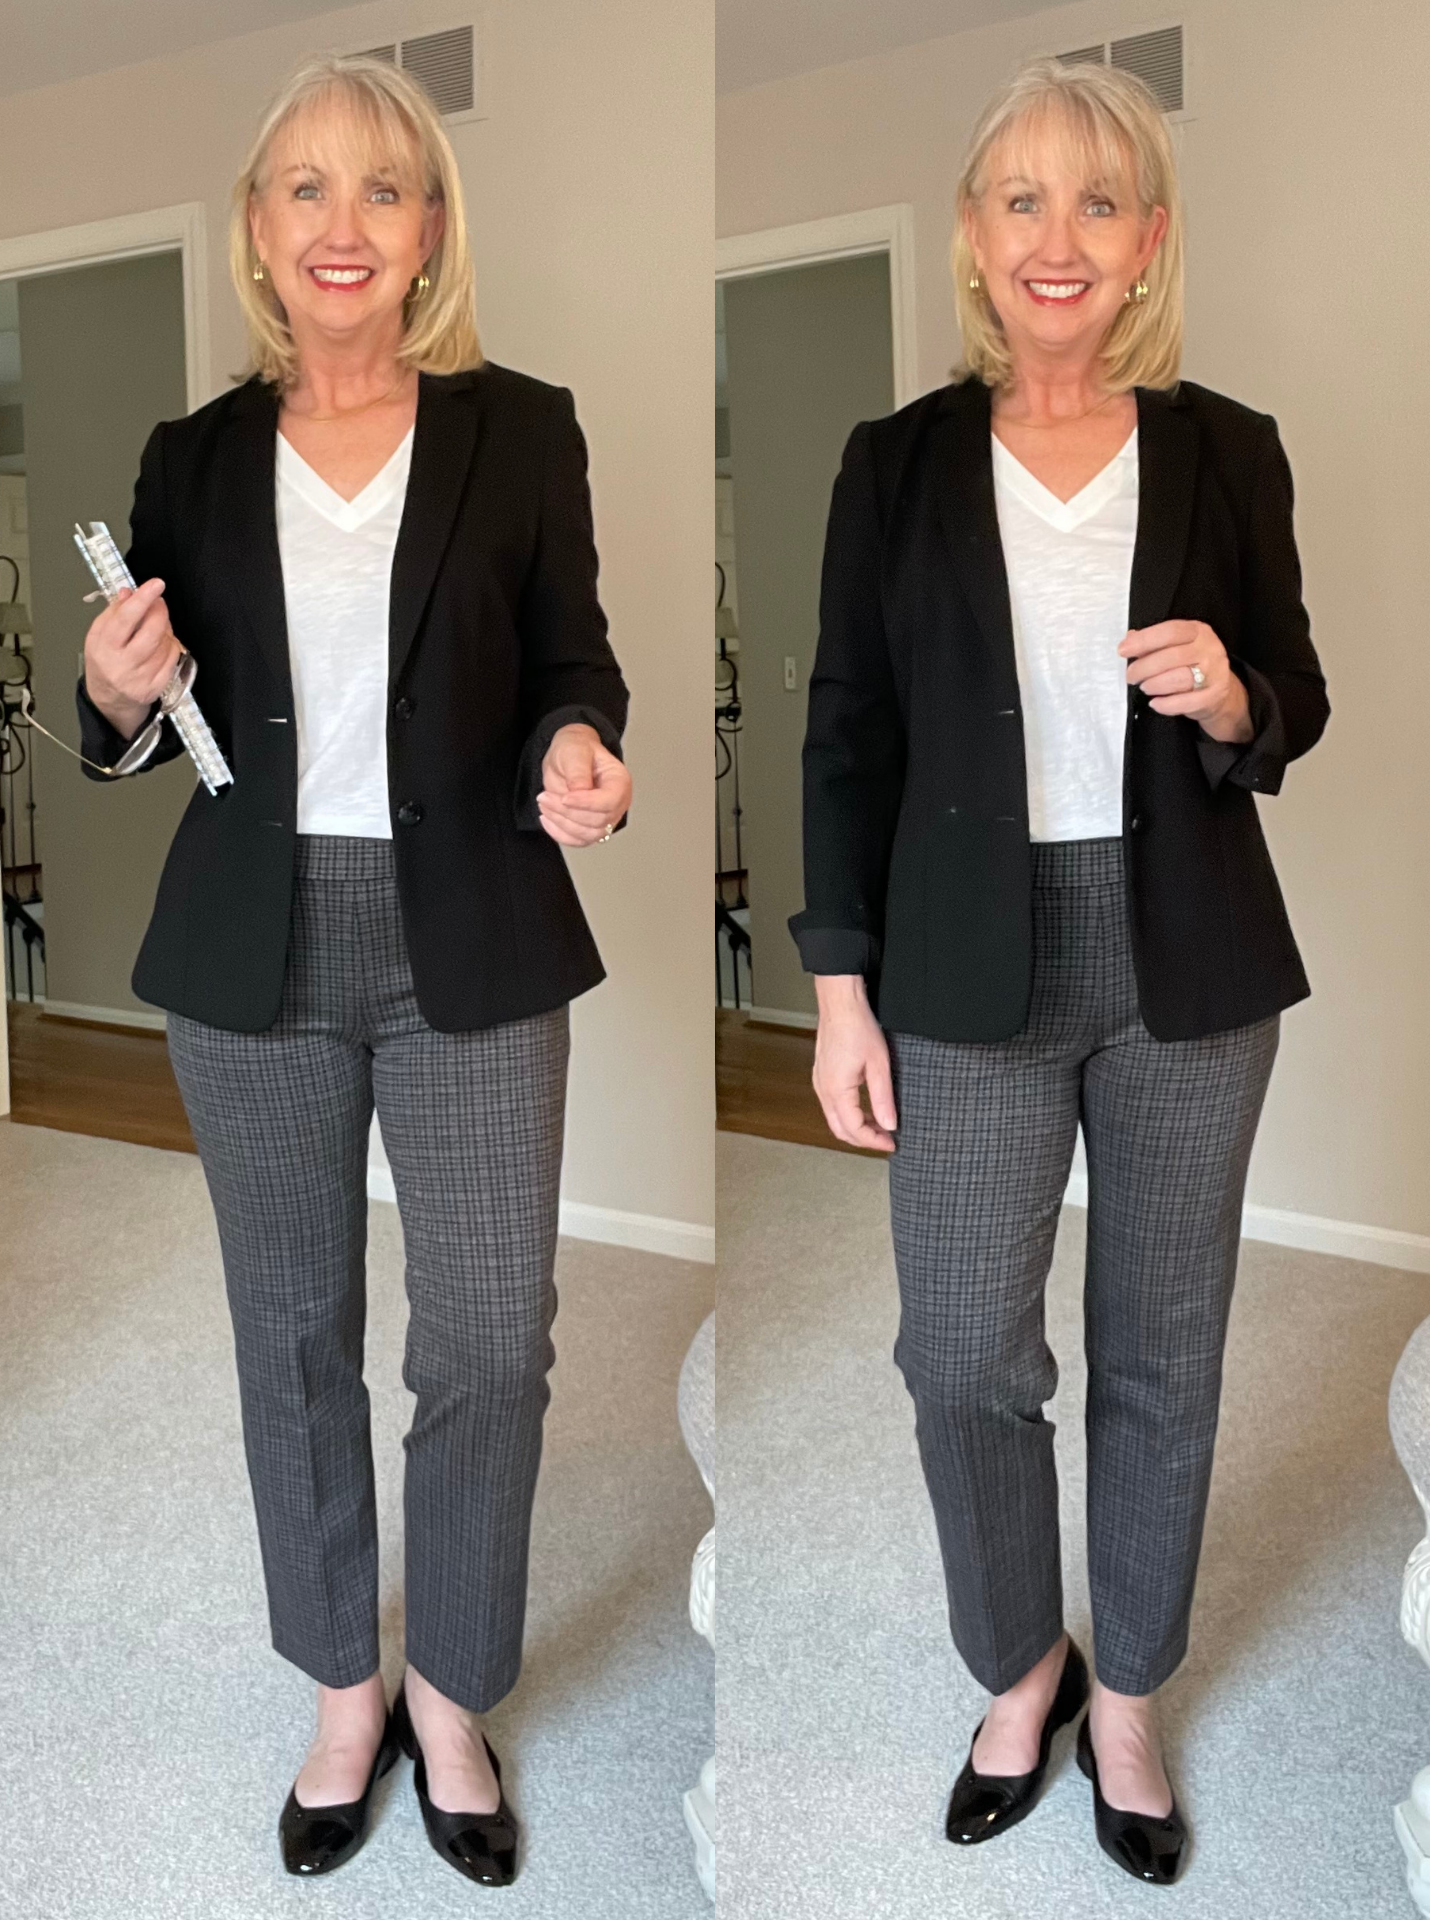 Back to the Classroom tee and blazer